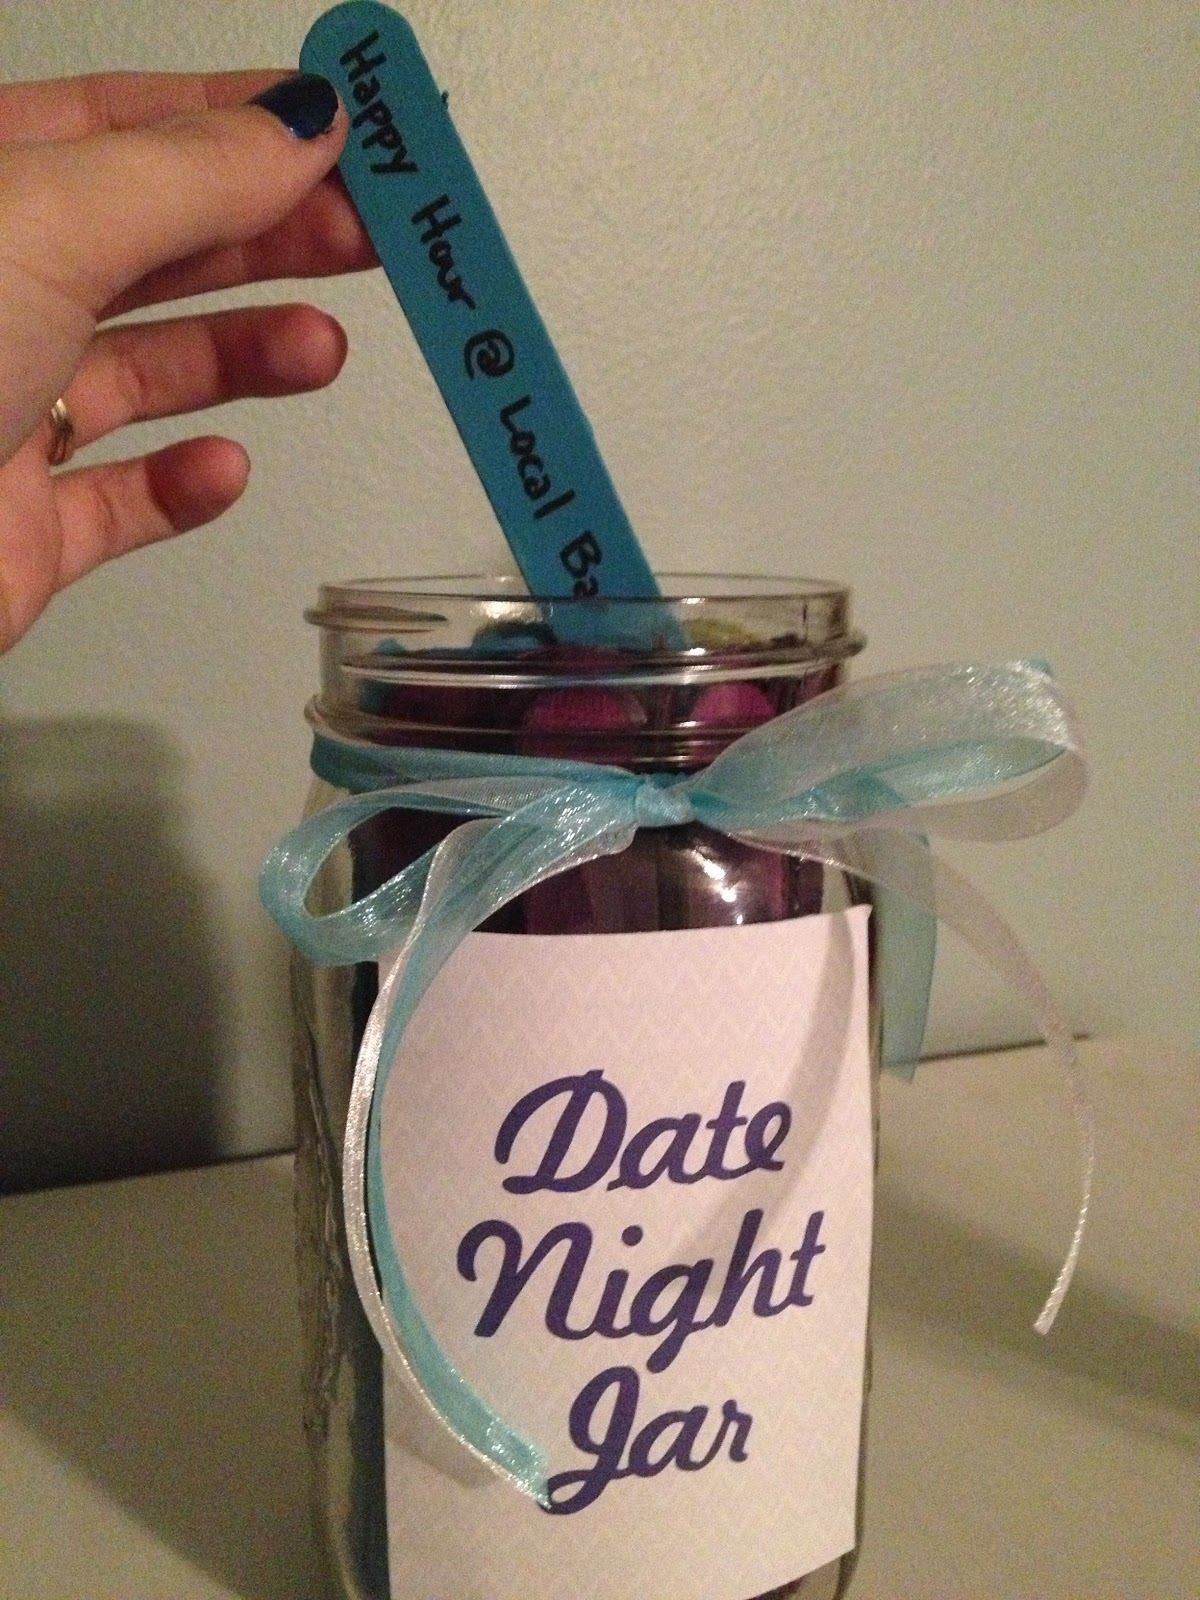 10 Ideal Ideas For Date Night With Wife %name 2020